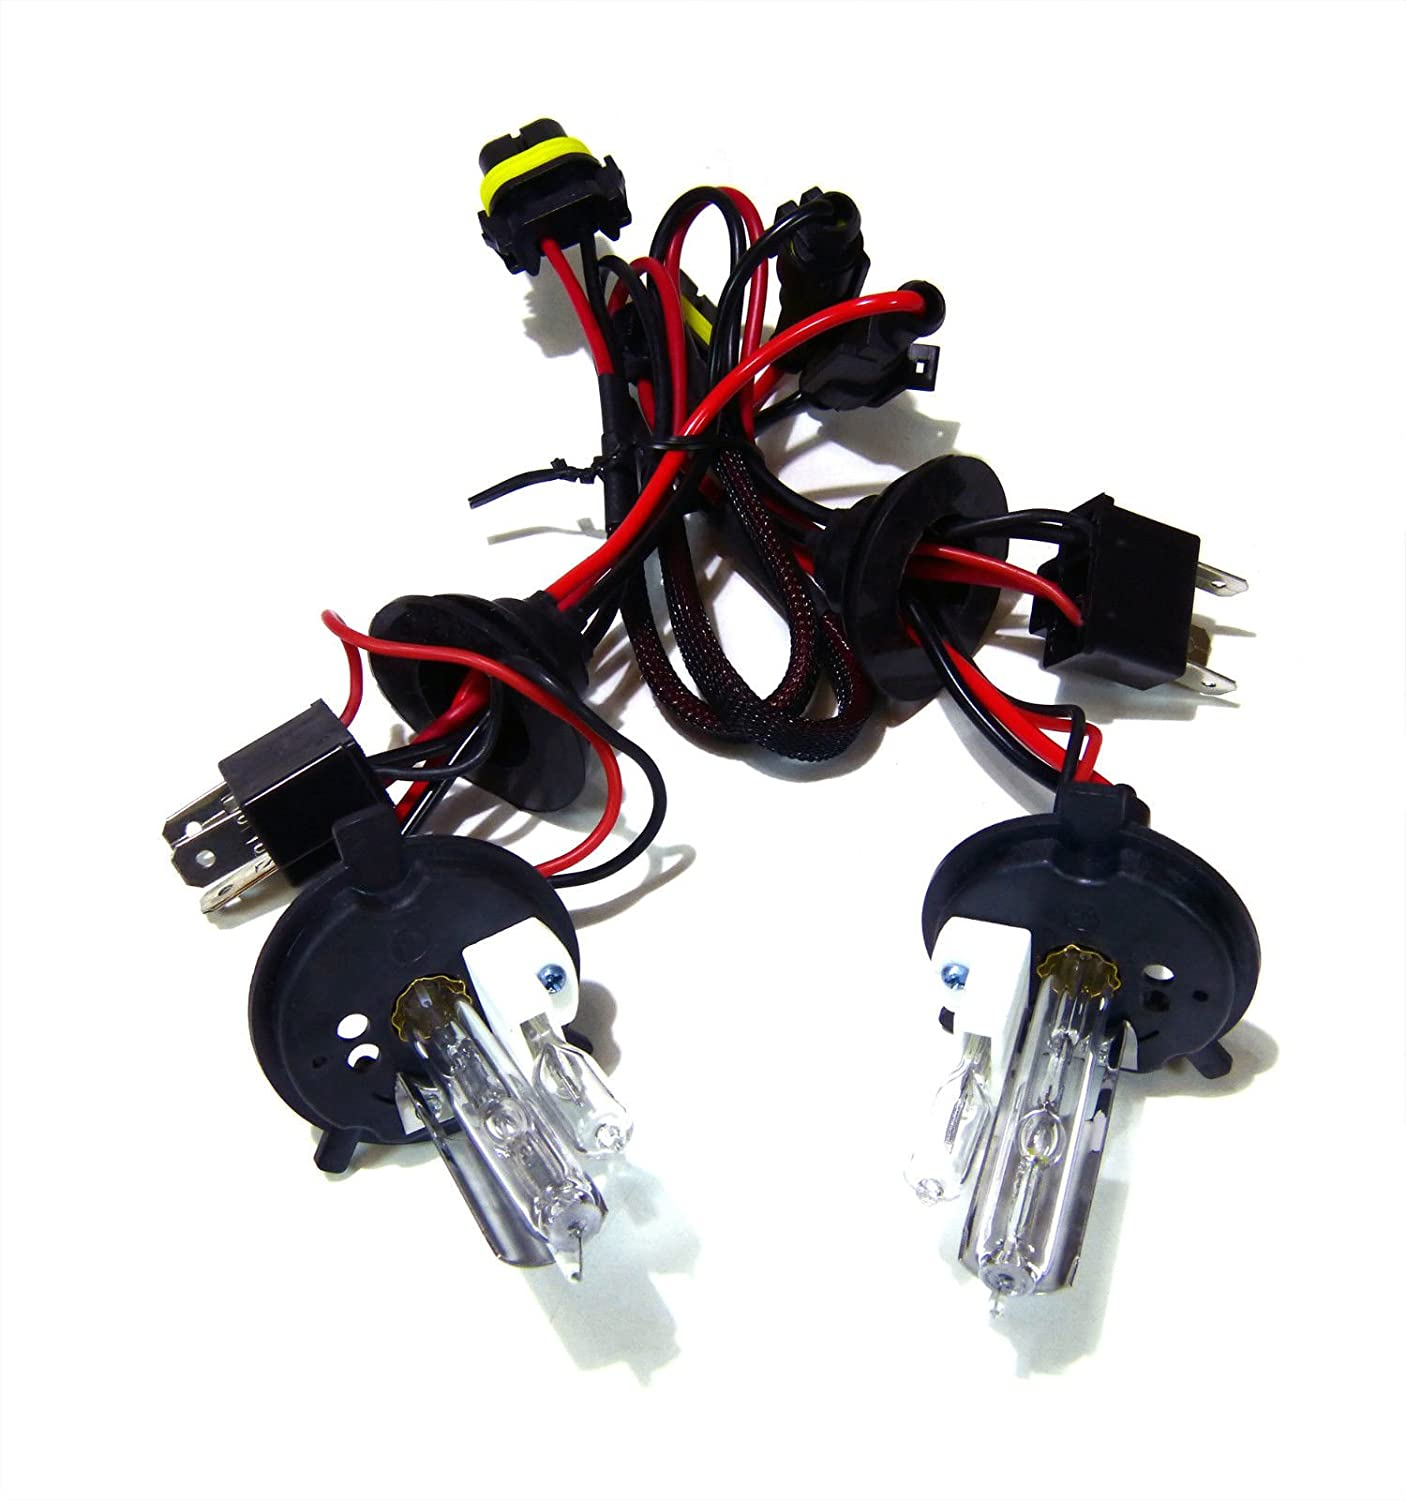 H15 Wiring Harness Hid Xenon Replacement Light Bulbs Low Beam Only 6000k Super White Pack Of 2 Automotive